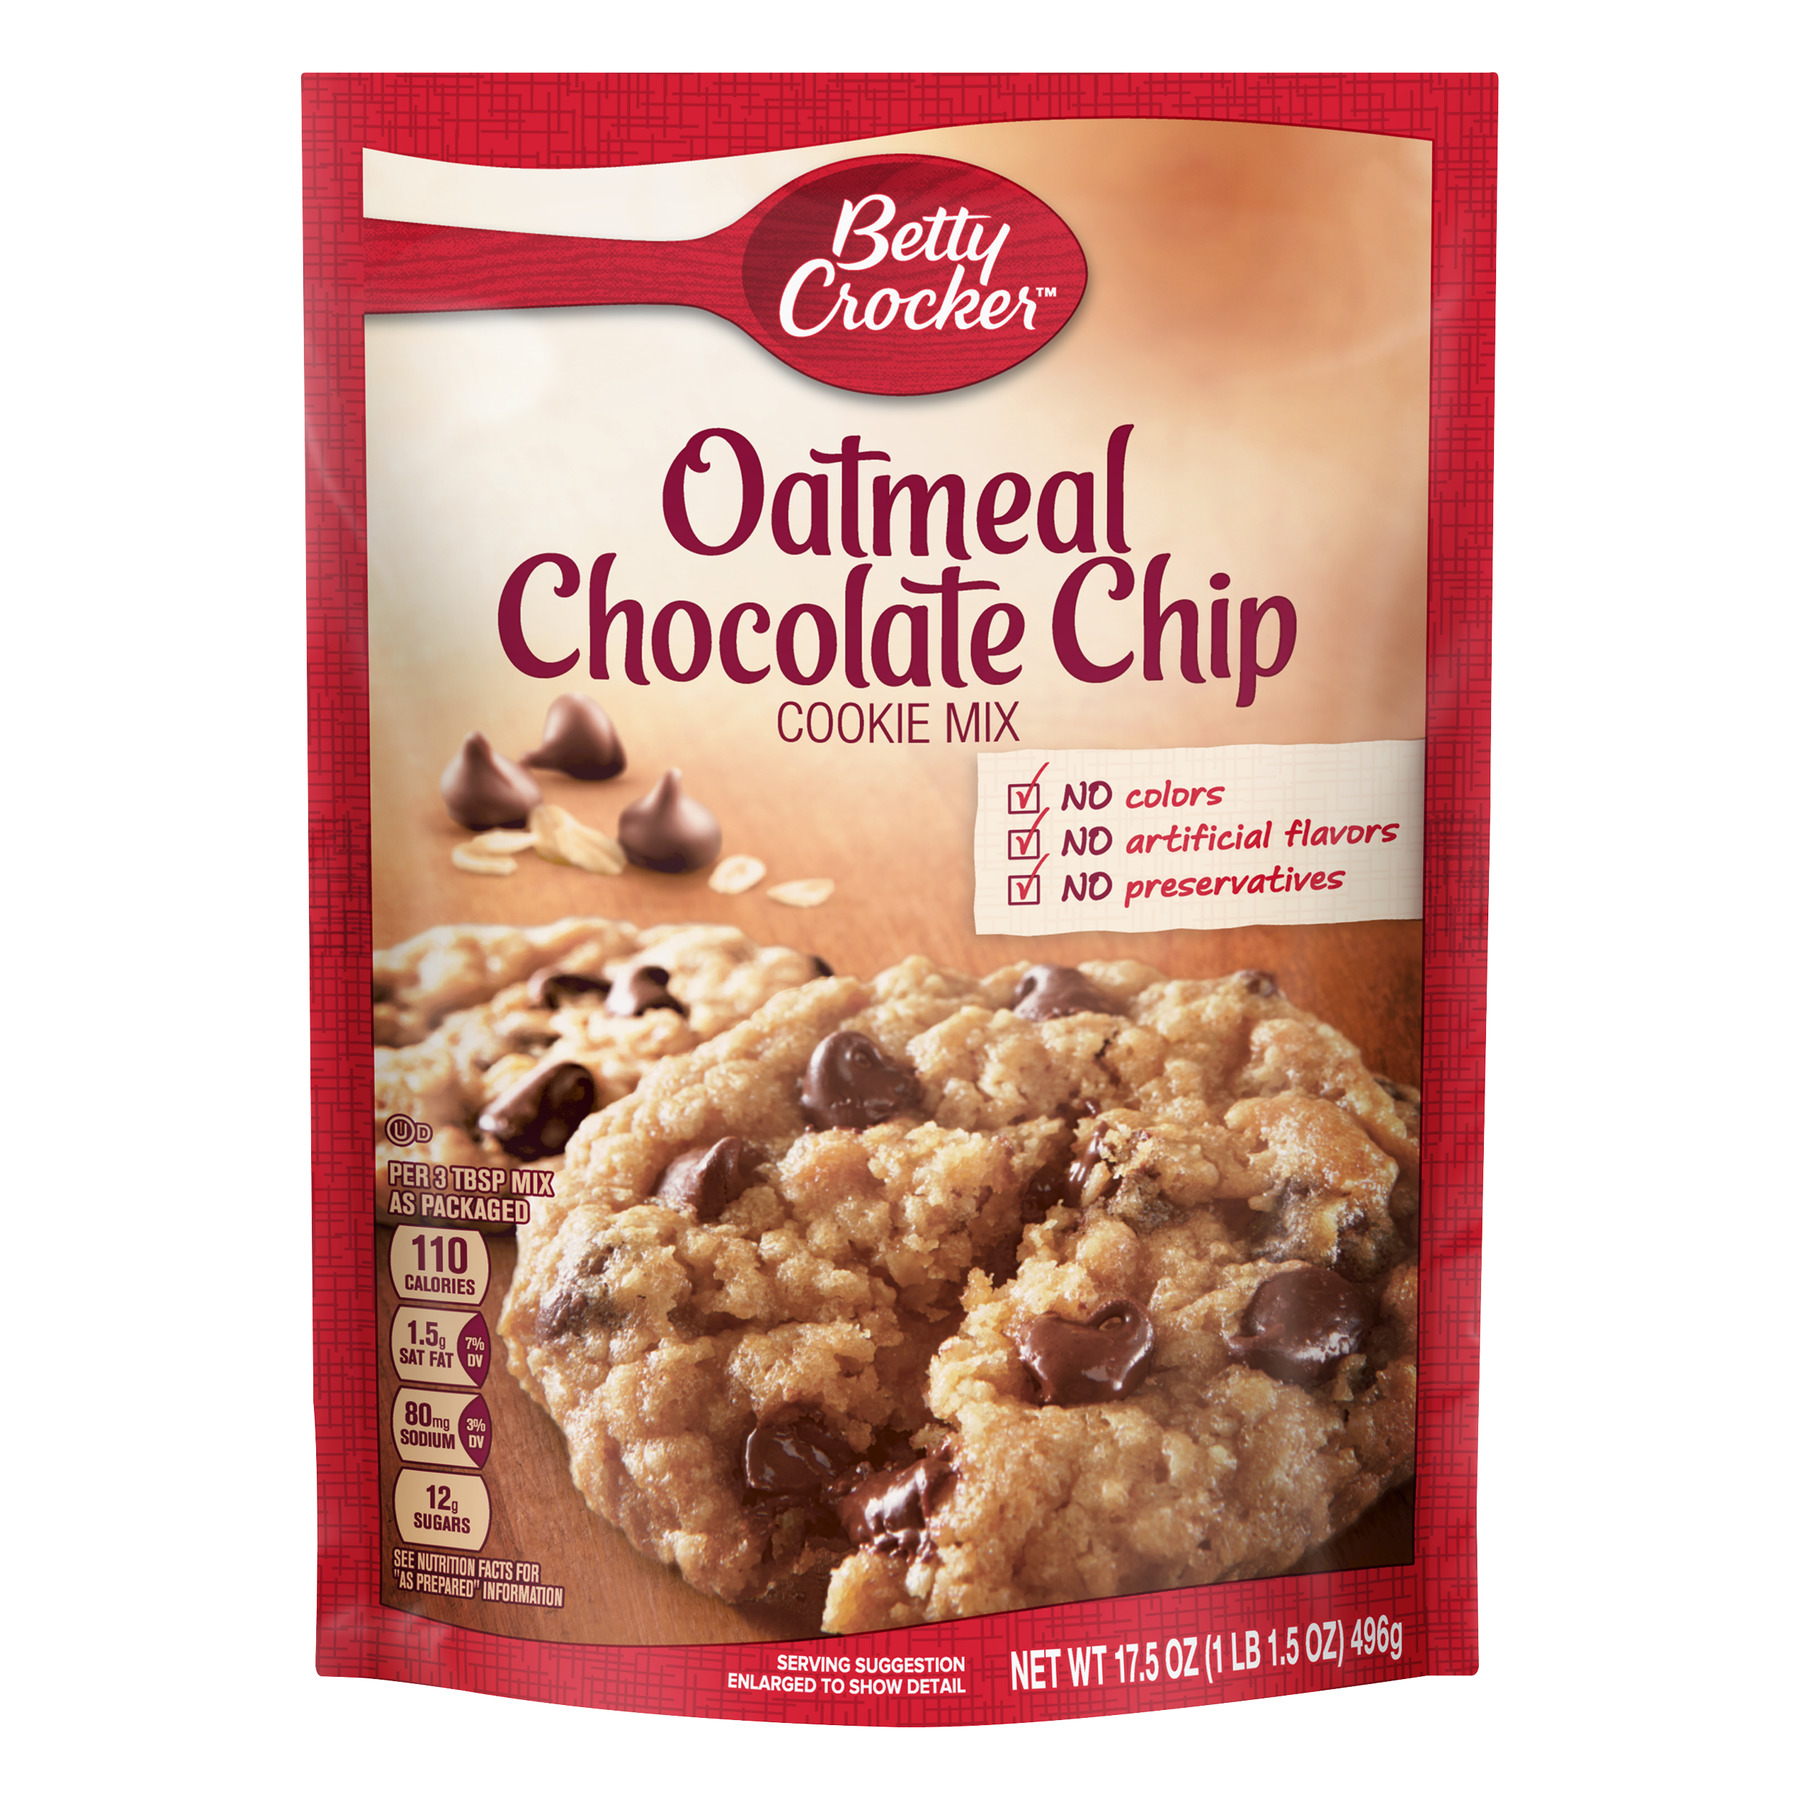 Betty Crocker Oatmeal Chocolate Chip Cookie Mix, 17.5 oz